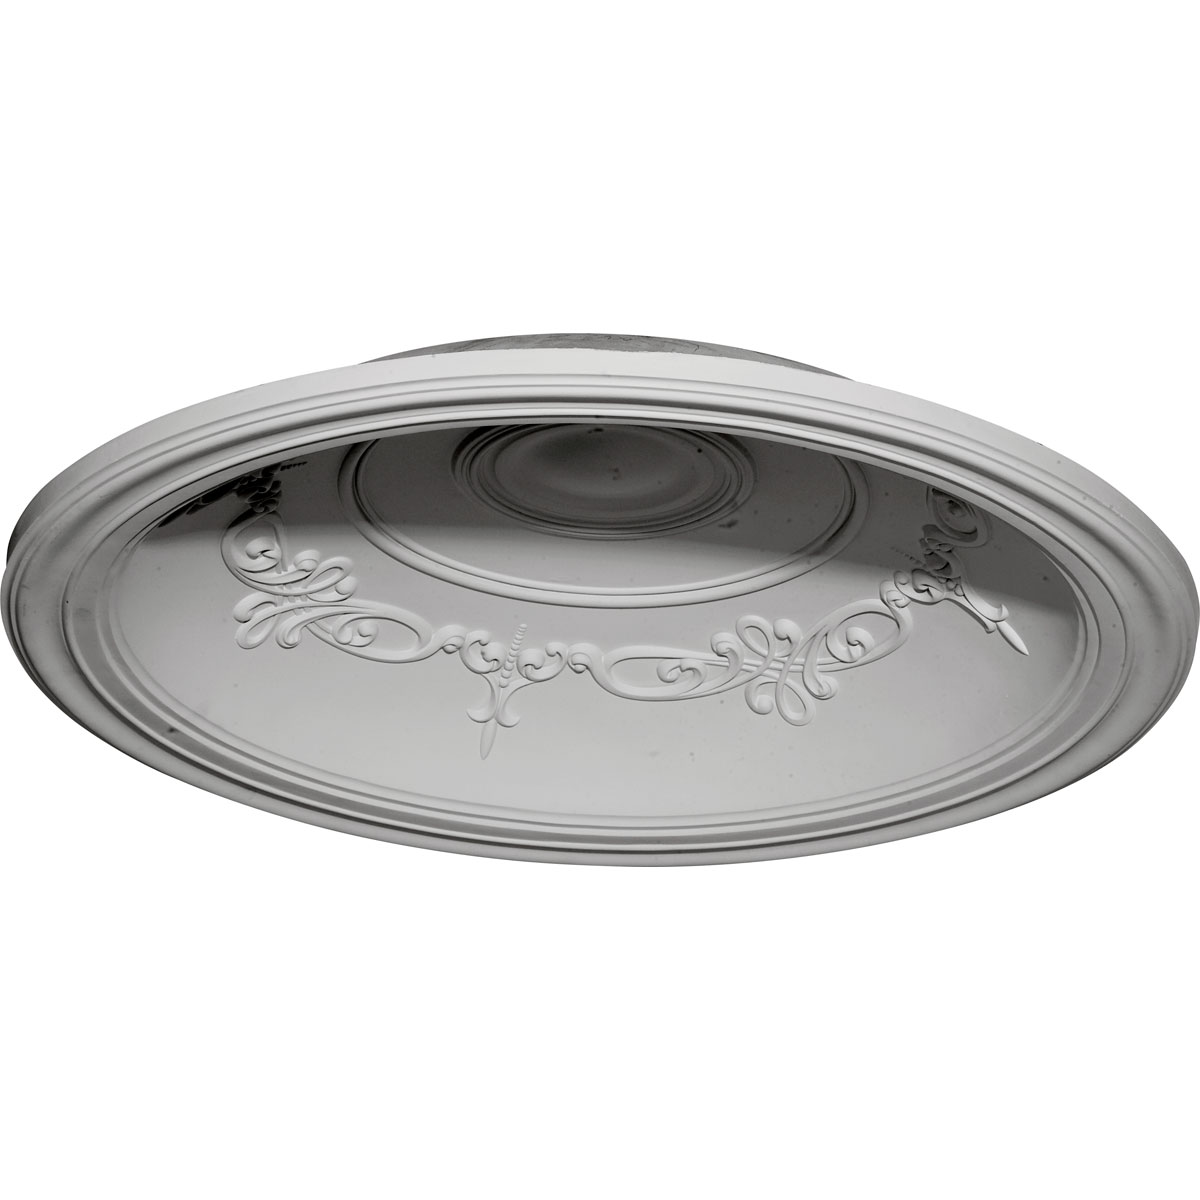 """DOME35CH 35""""OD x 27-7/8""""ID x 5-5/8""""D Chesterfield Recessed Mount Ceiling Dome (29-1/2""""Diameter x 6-5/8""""D Rough Opening)"""